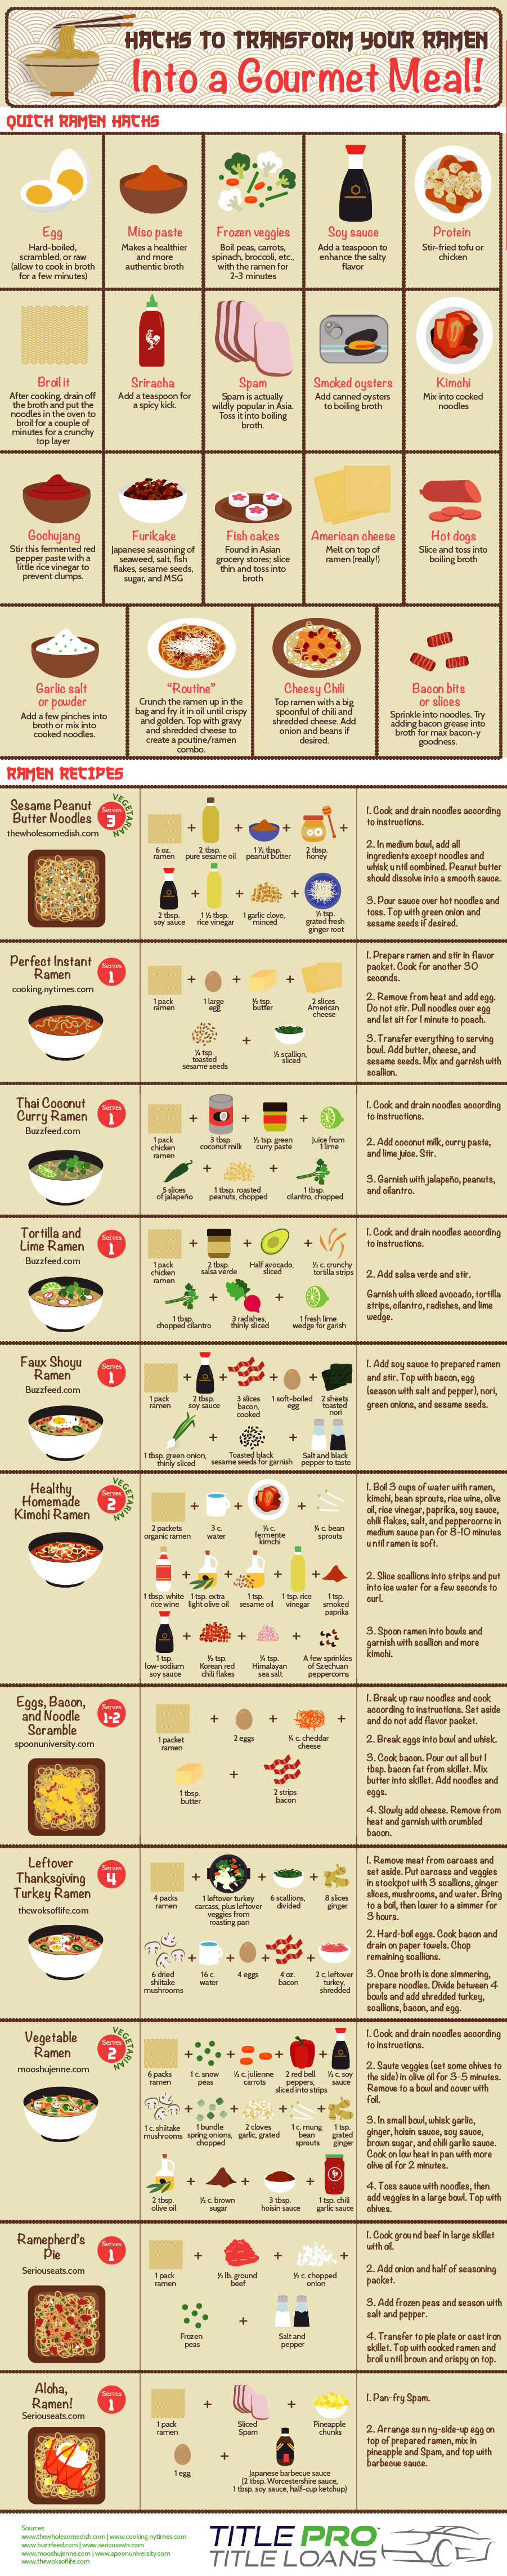 How to Transform Ramen into a Gourmet Meal #infographic